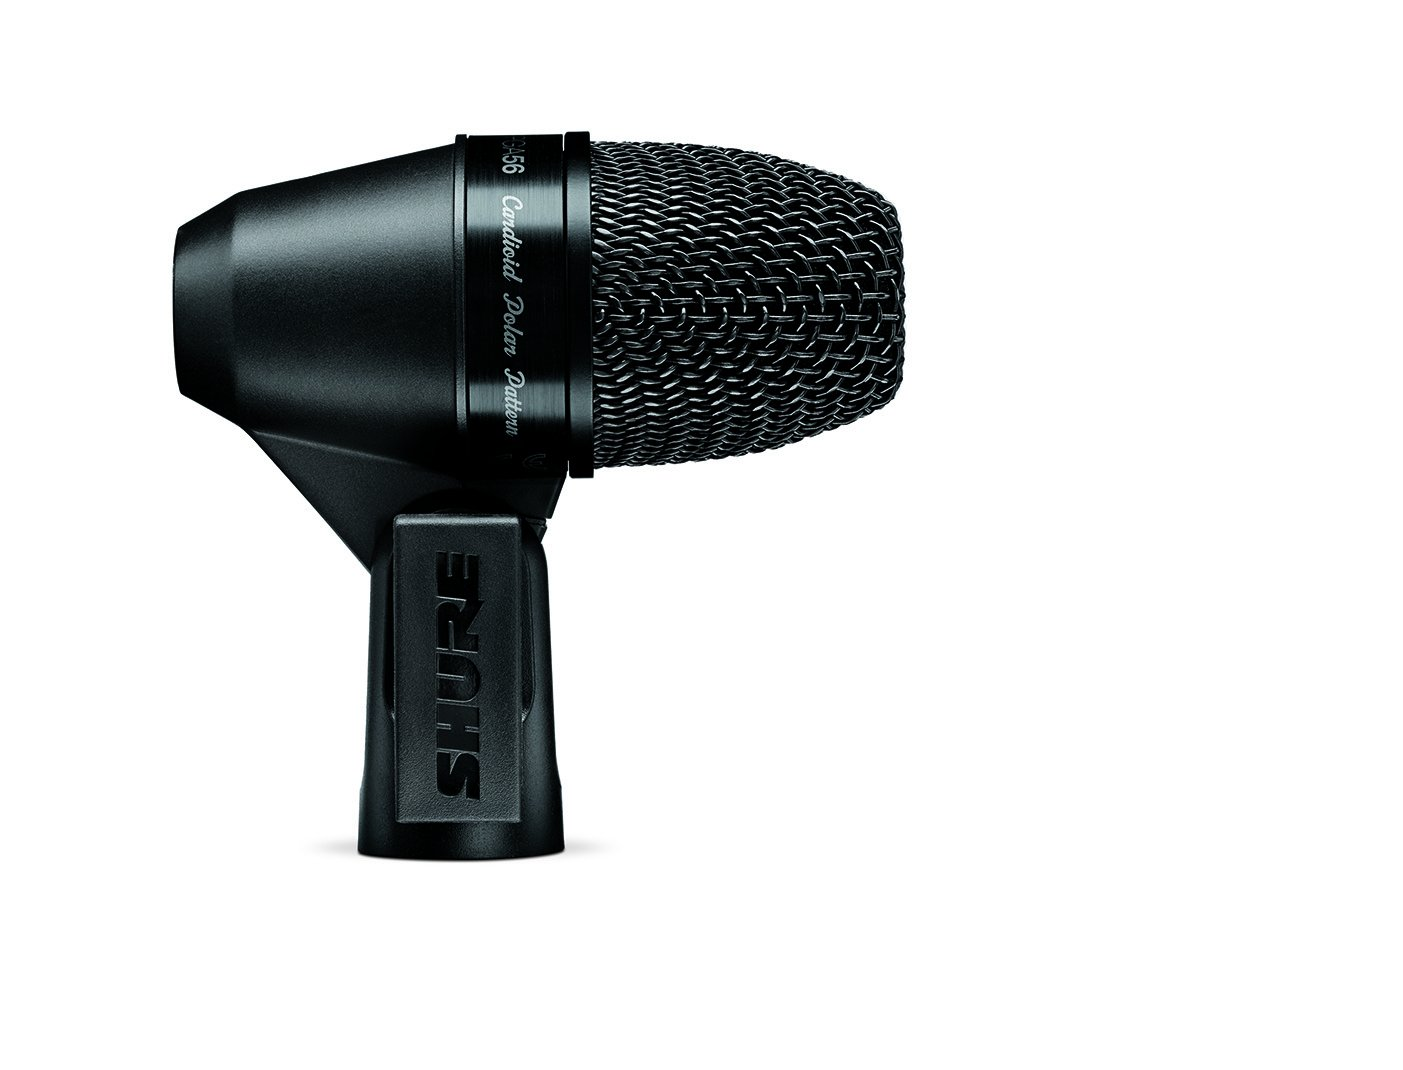 Shure PGA56-LC Cardioid Swivel-Mount Dynamic Snare/Tom Microphone with AP56DM Drum Mount, No Cable Shure Incorporated